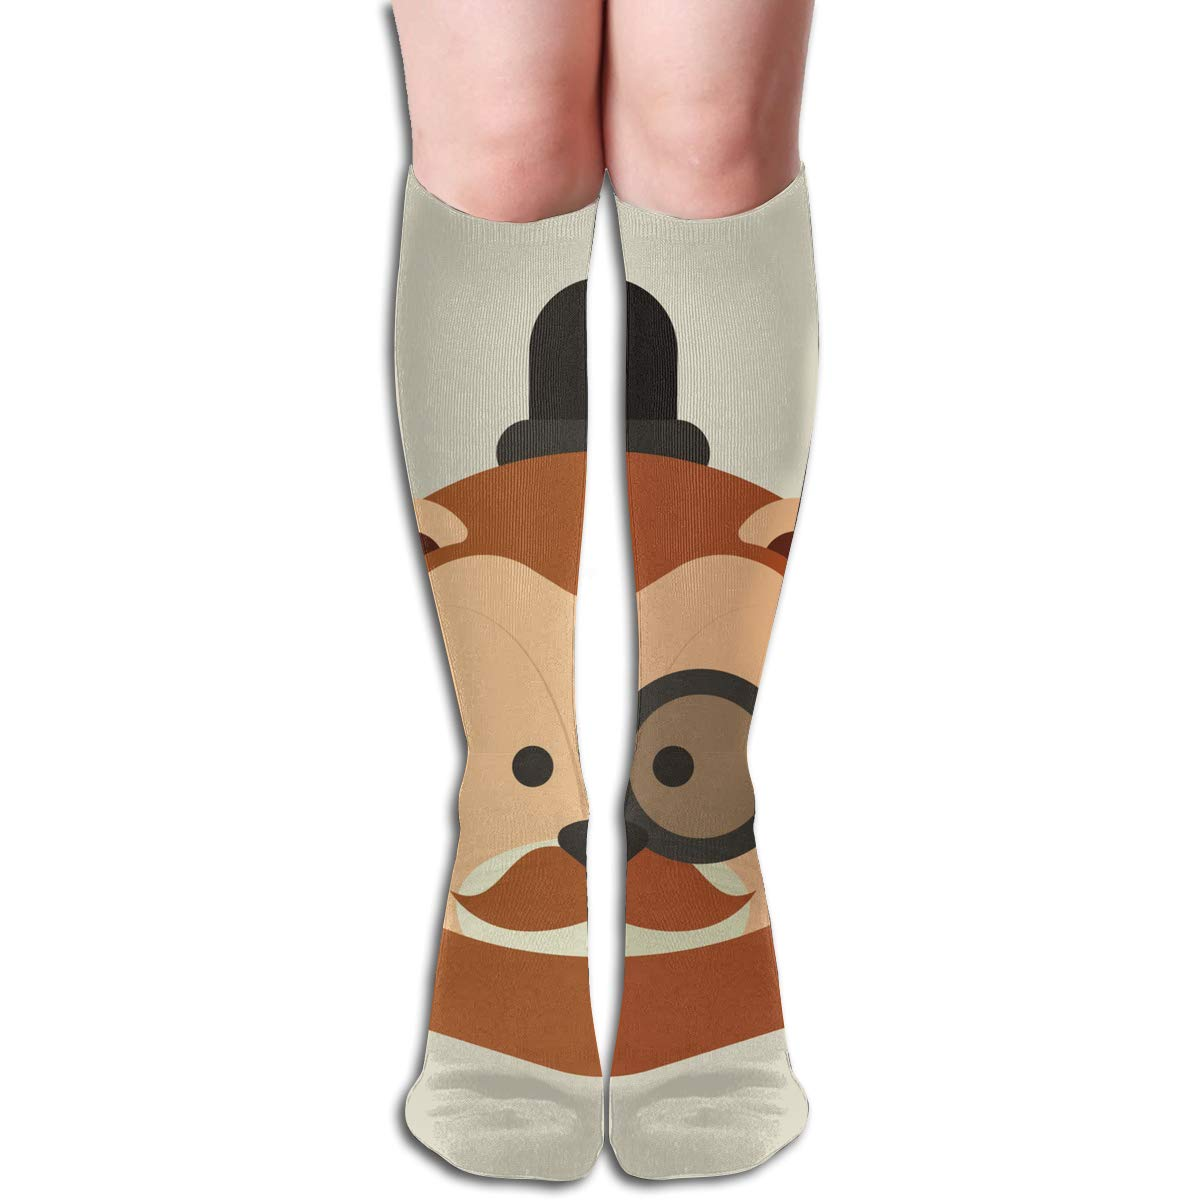 Women Socks Over Knee Fondo De Pantalla Water Lily Frog Winter Special For Christmas